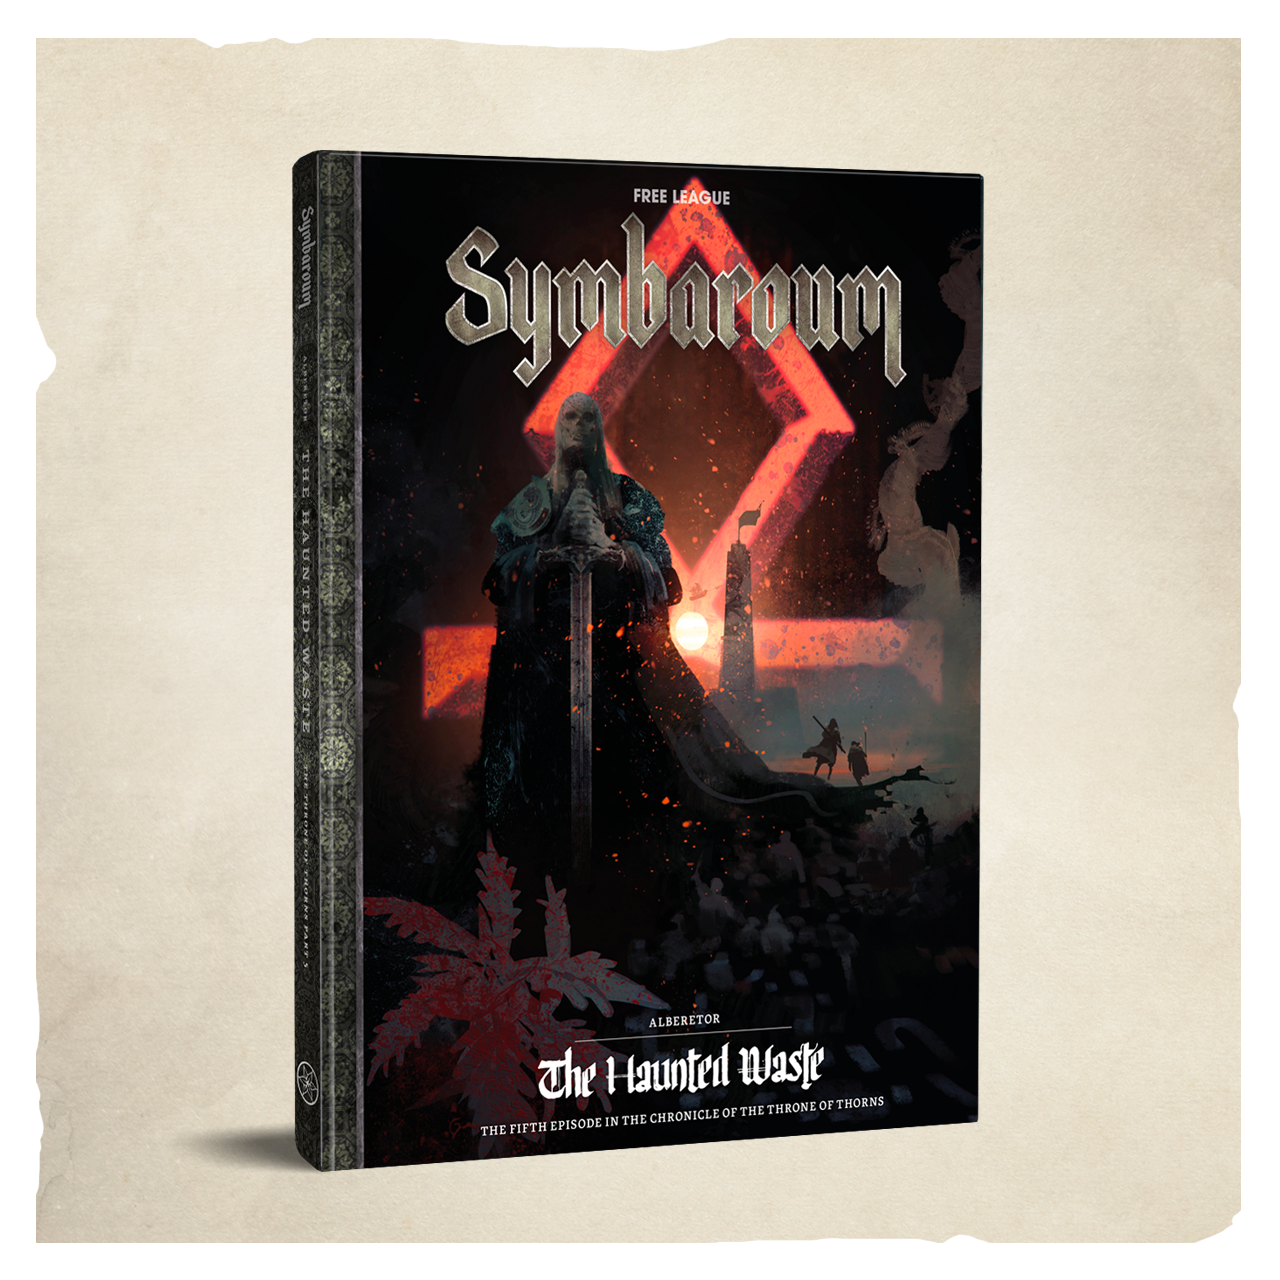 Cover di Alberetor – The Haunted Waste per Symbaroum